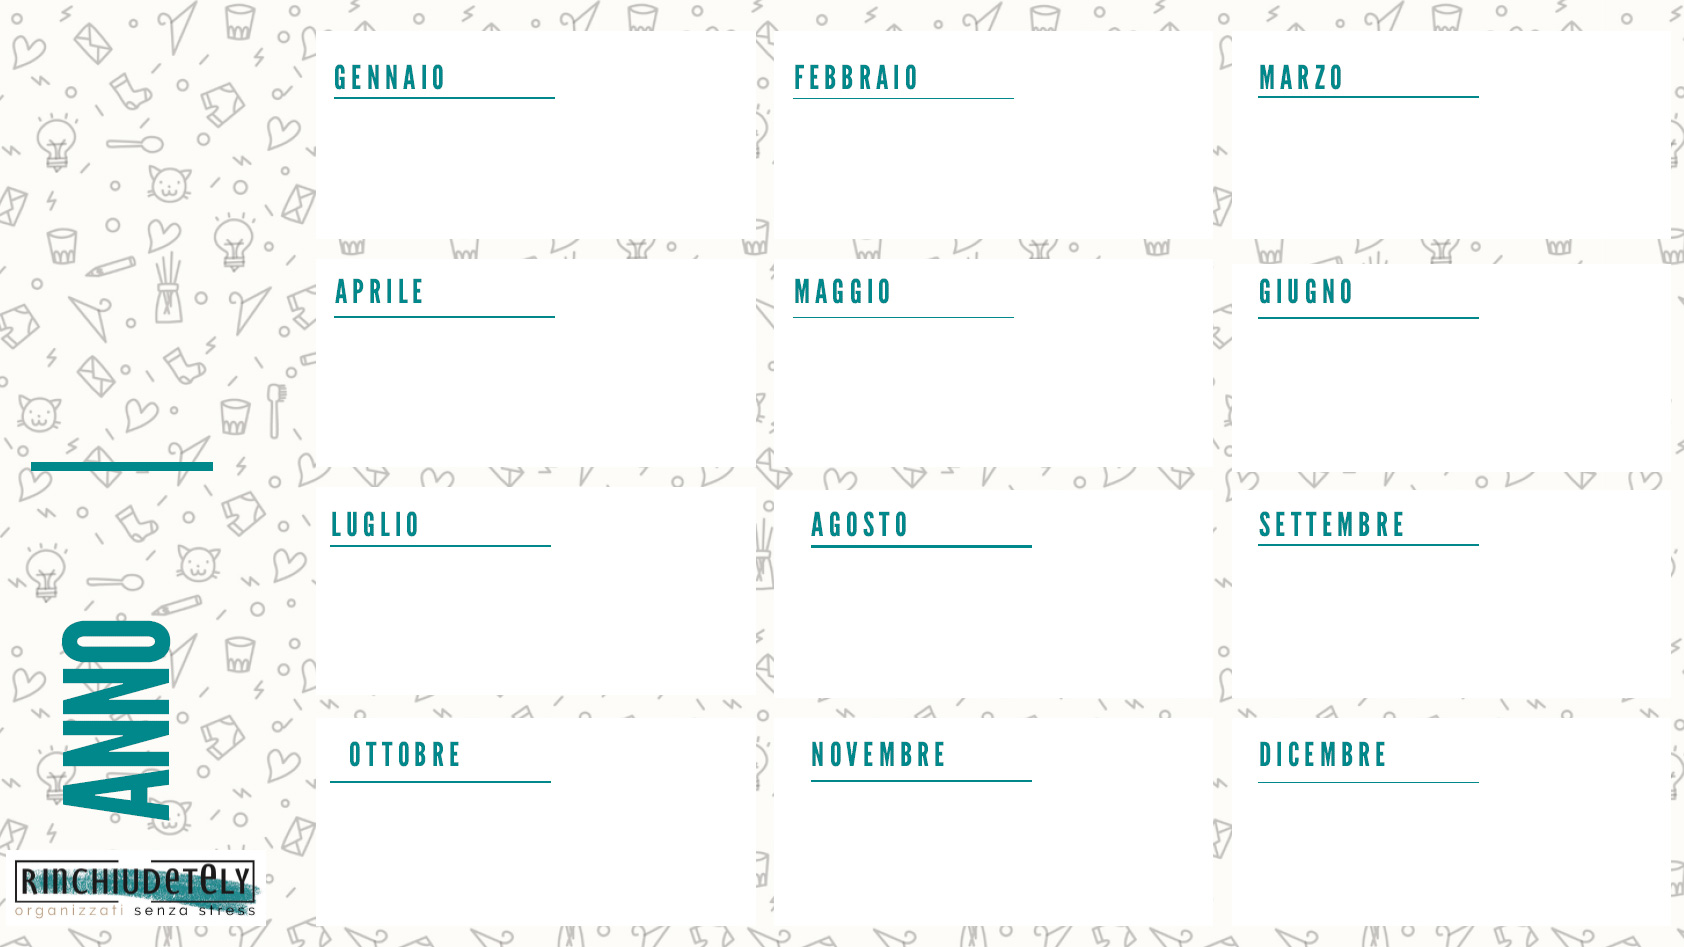 Planner annuale Rinchiudetely